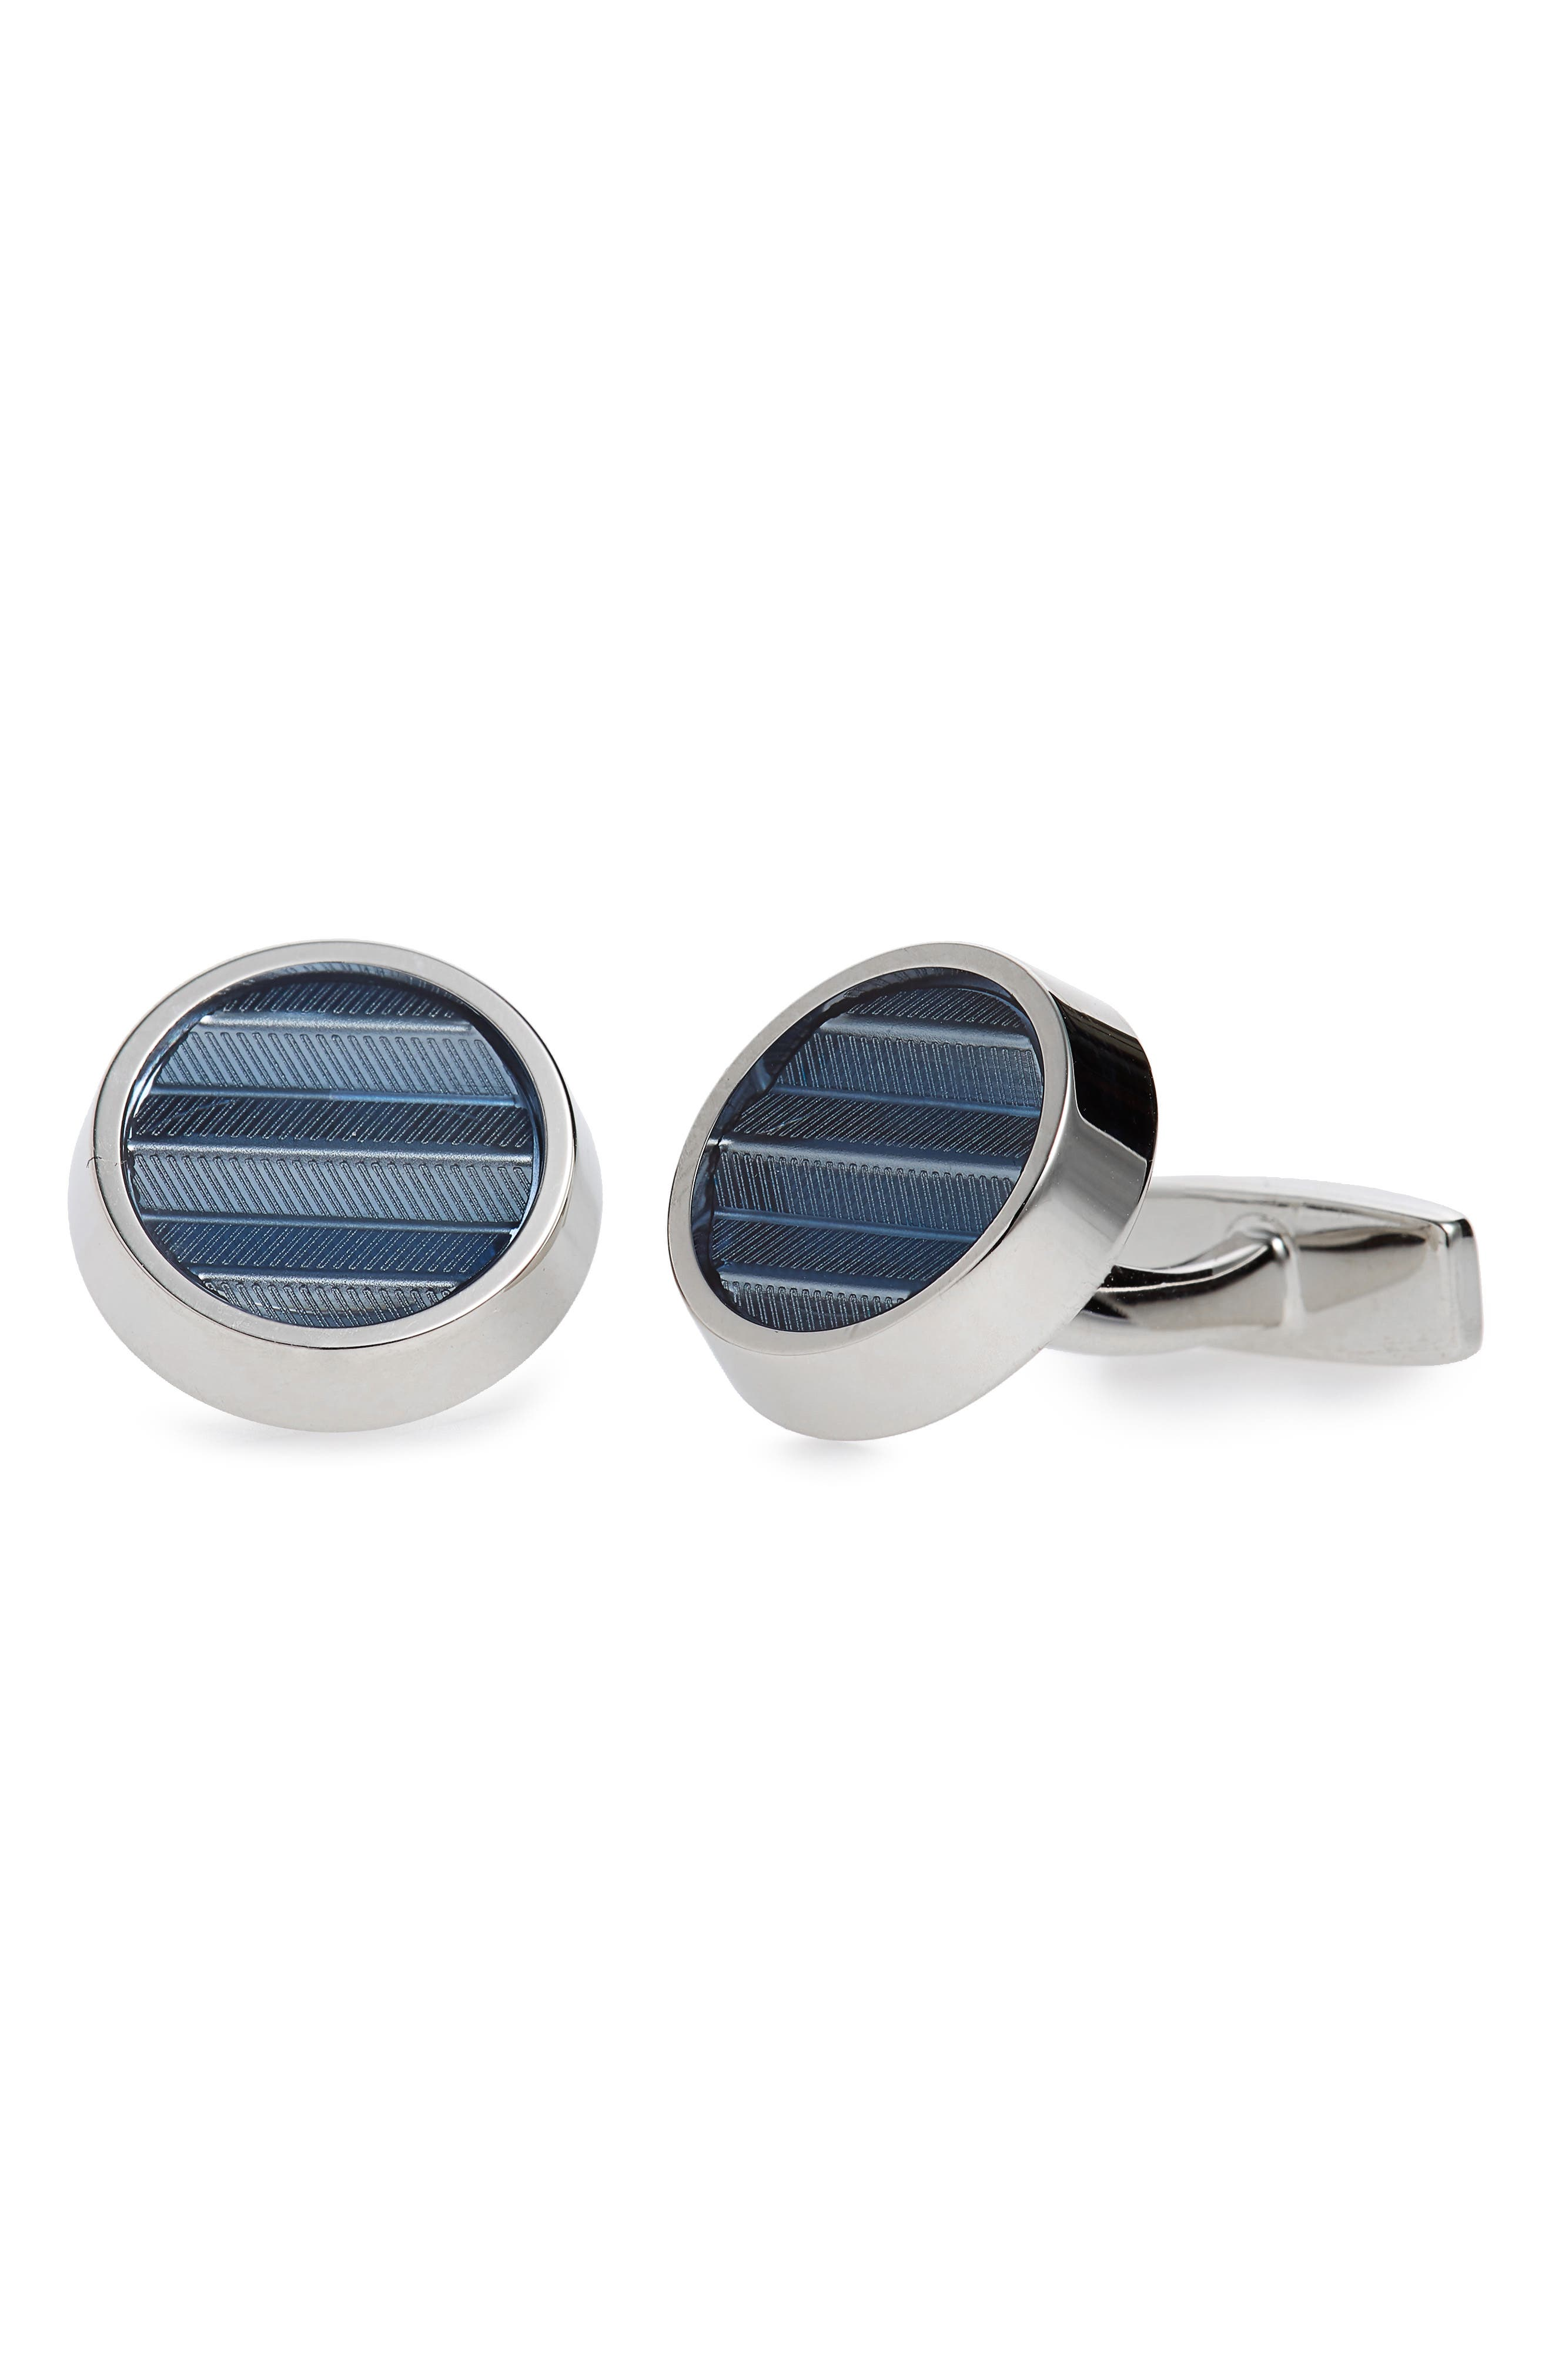 Kay Round Herringbone Cuff Links,                             Main thumbnail 1, color,                             Blue